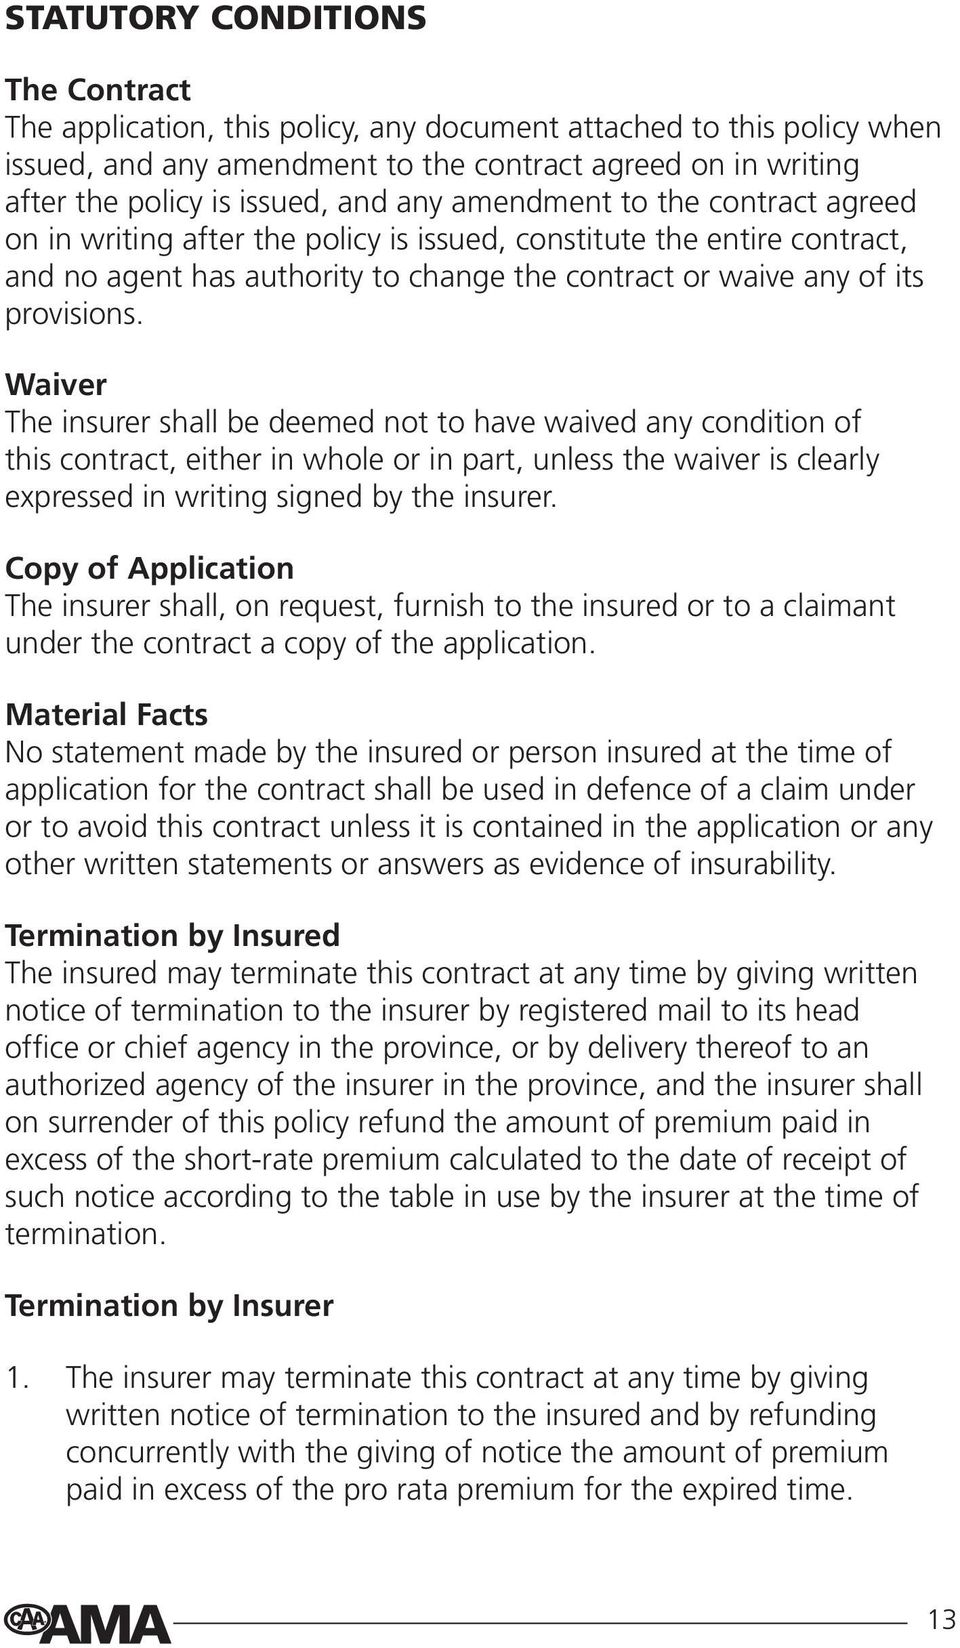 Waiver The insurer shall be deemed not to have waived any condition of this contract, either in whole or in part, unless the waiver is clearly expressed in writing signed by the insurer.